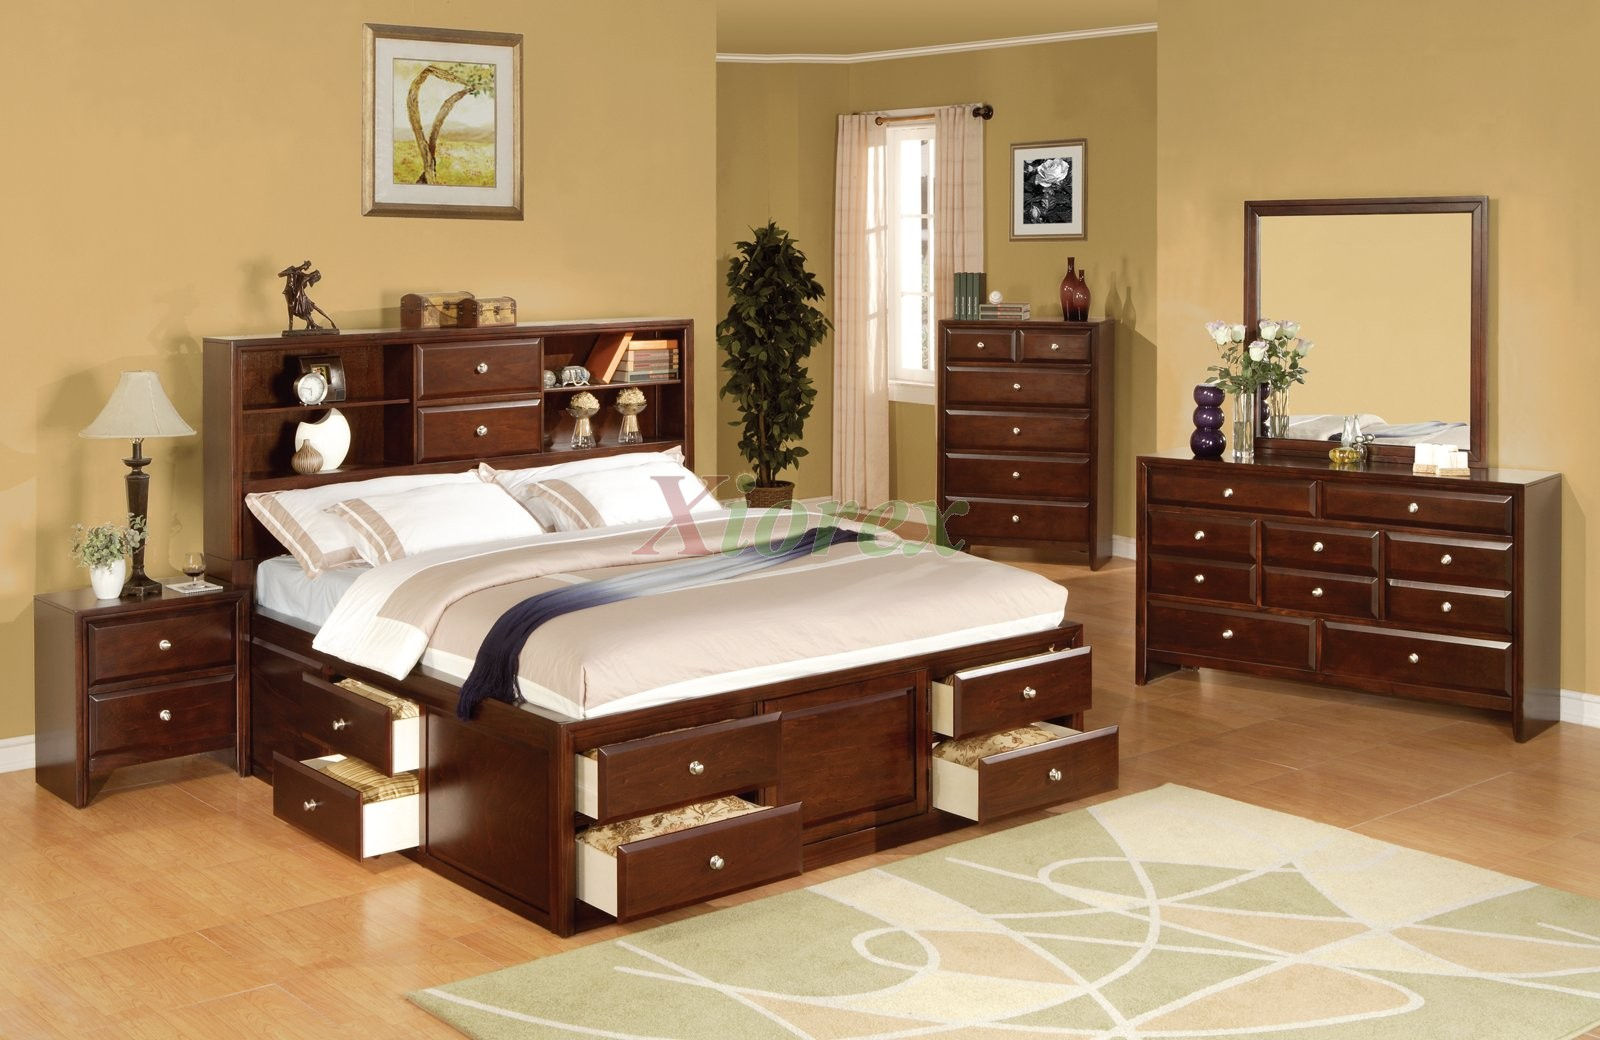 Bookcase and storage bedroom furniture set 137 xiorex for Bedroom furniture